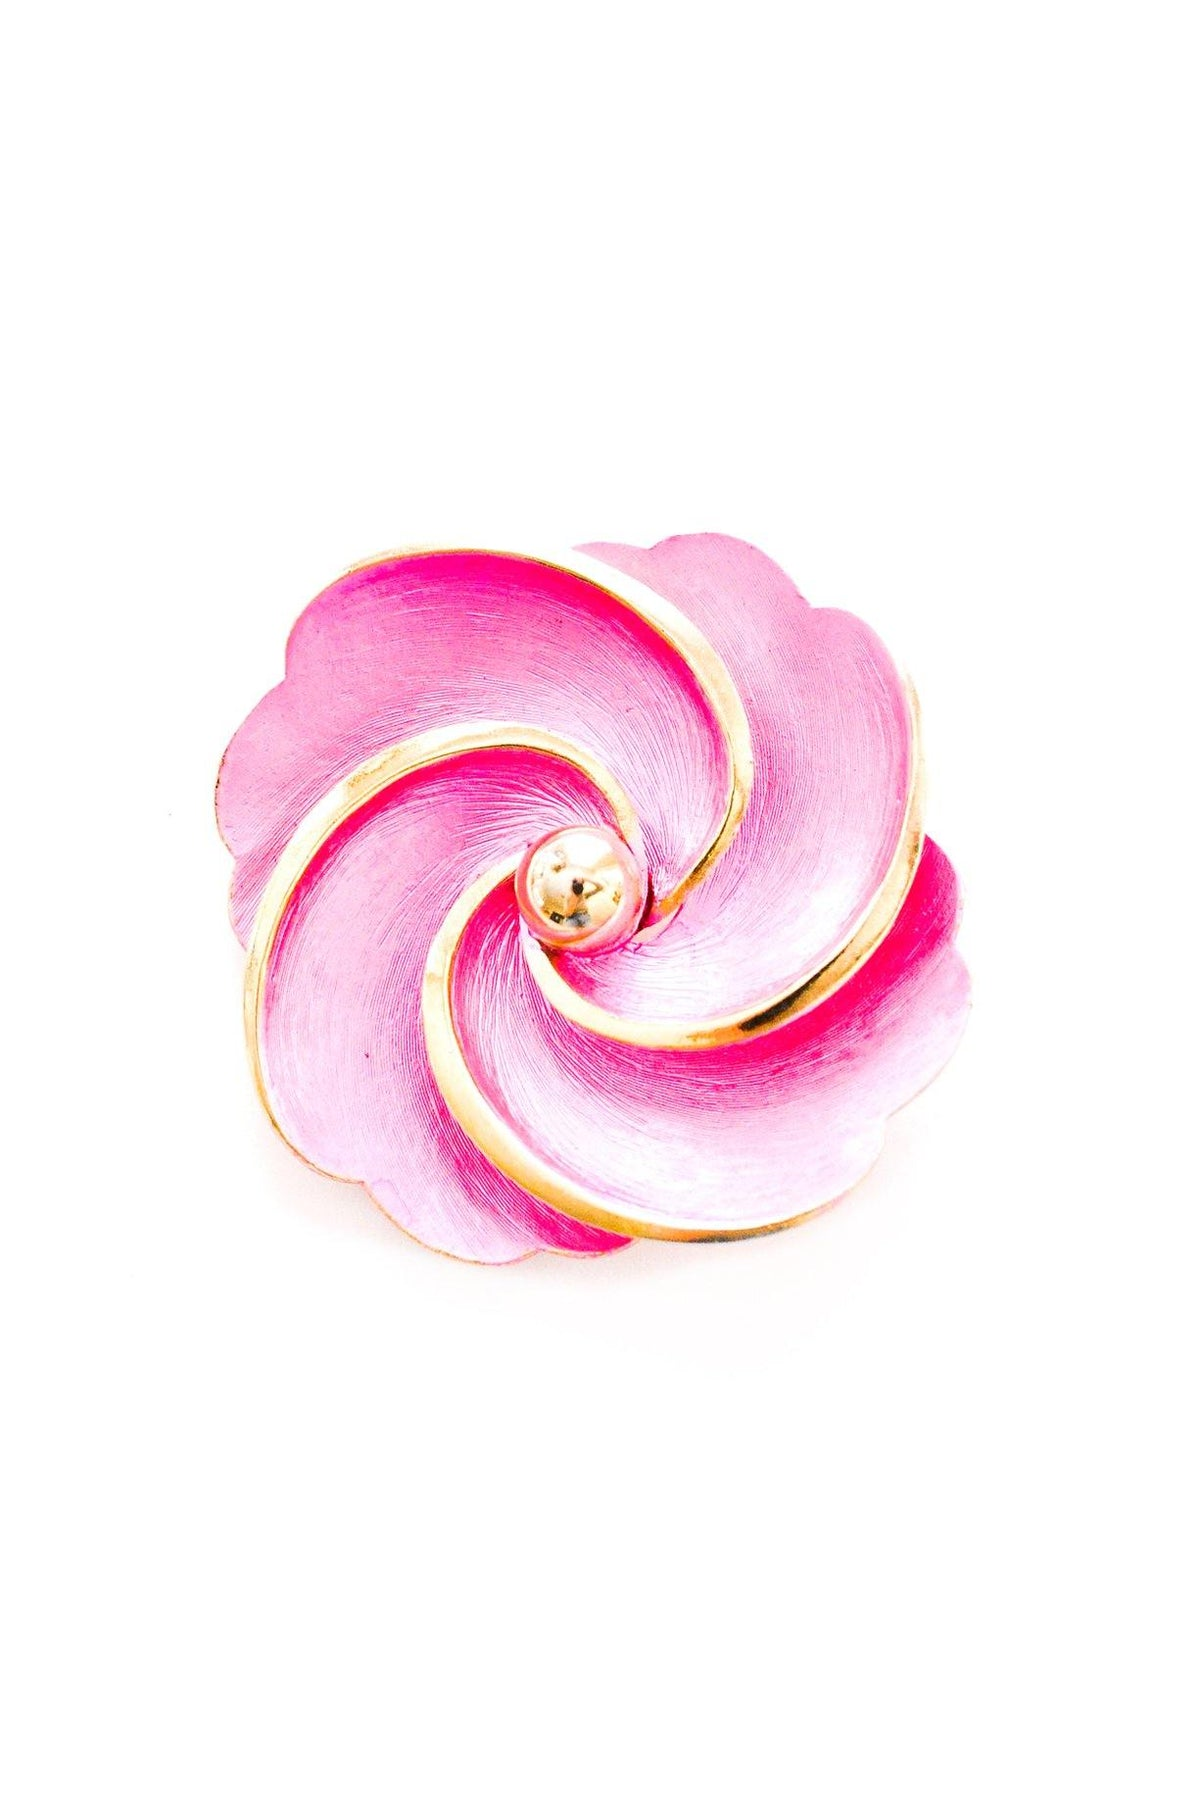 Vintage magenta pink floral swirl brooch from Sweet & Spark.